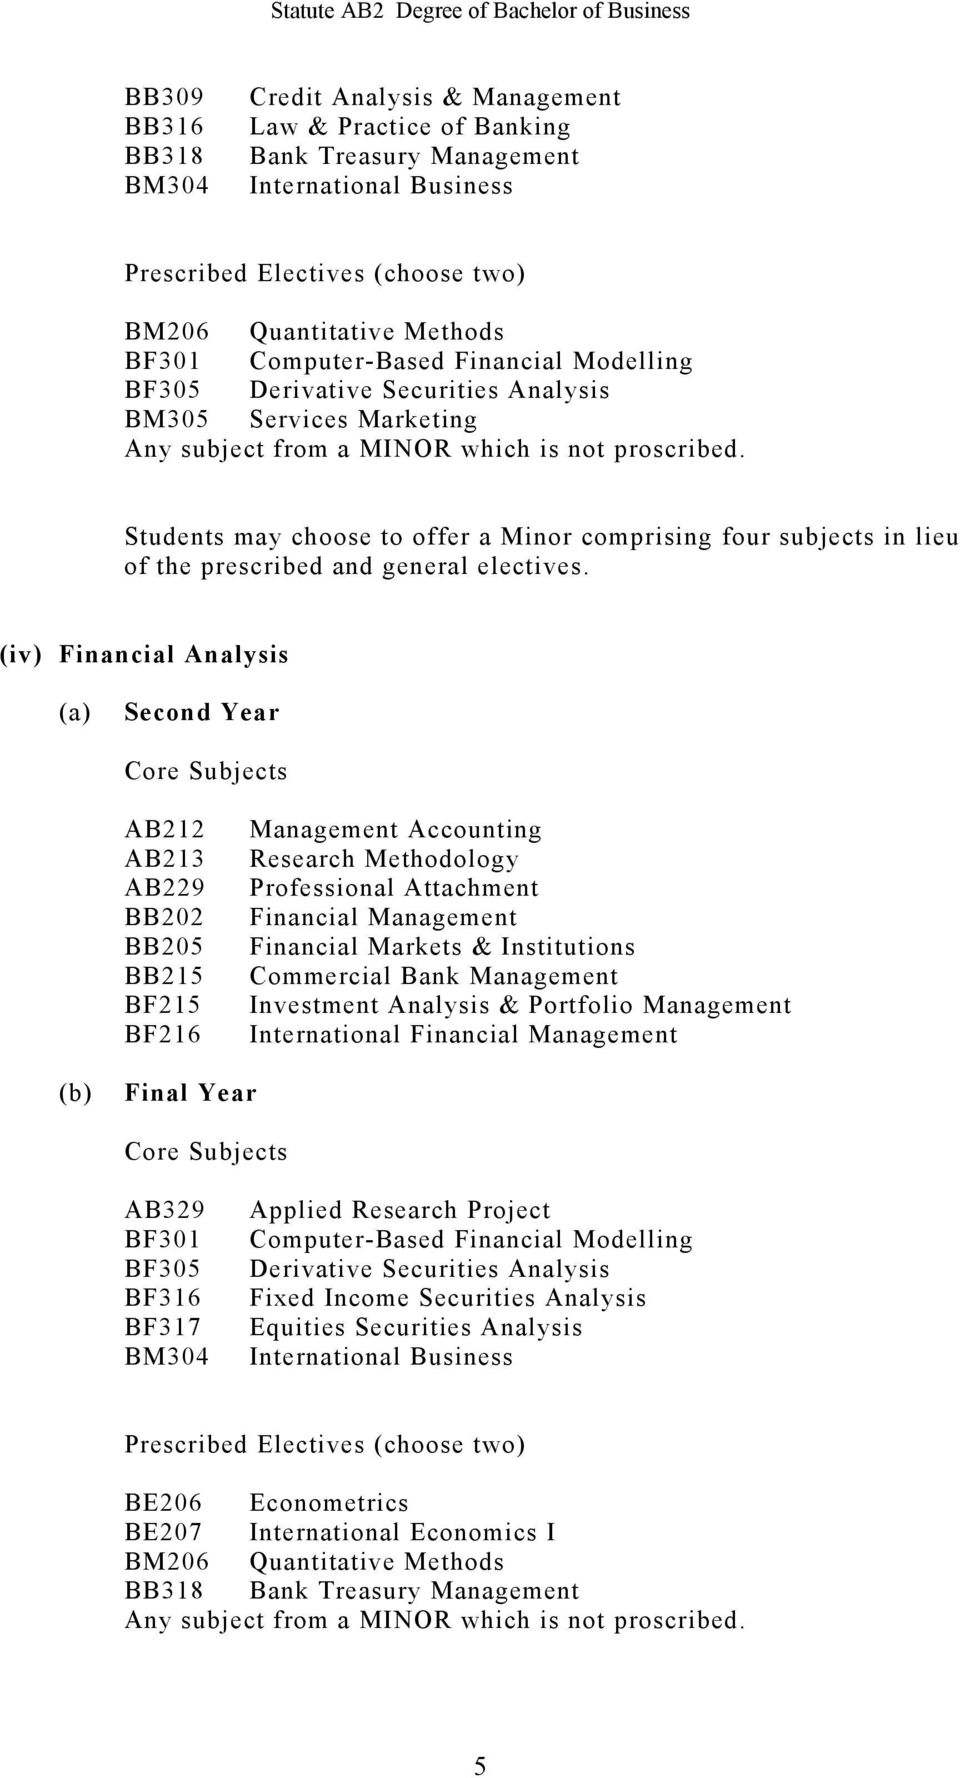 Bank Management Investment Analysis & Portfolio Management International Financial Management BF301 BF305 BF316 BF317 Computer-Based Financial Modelling Derivative Securities